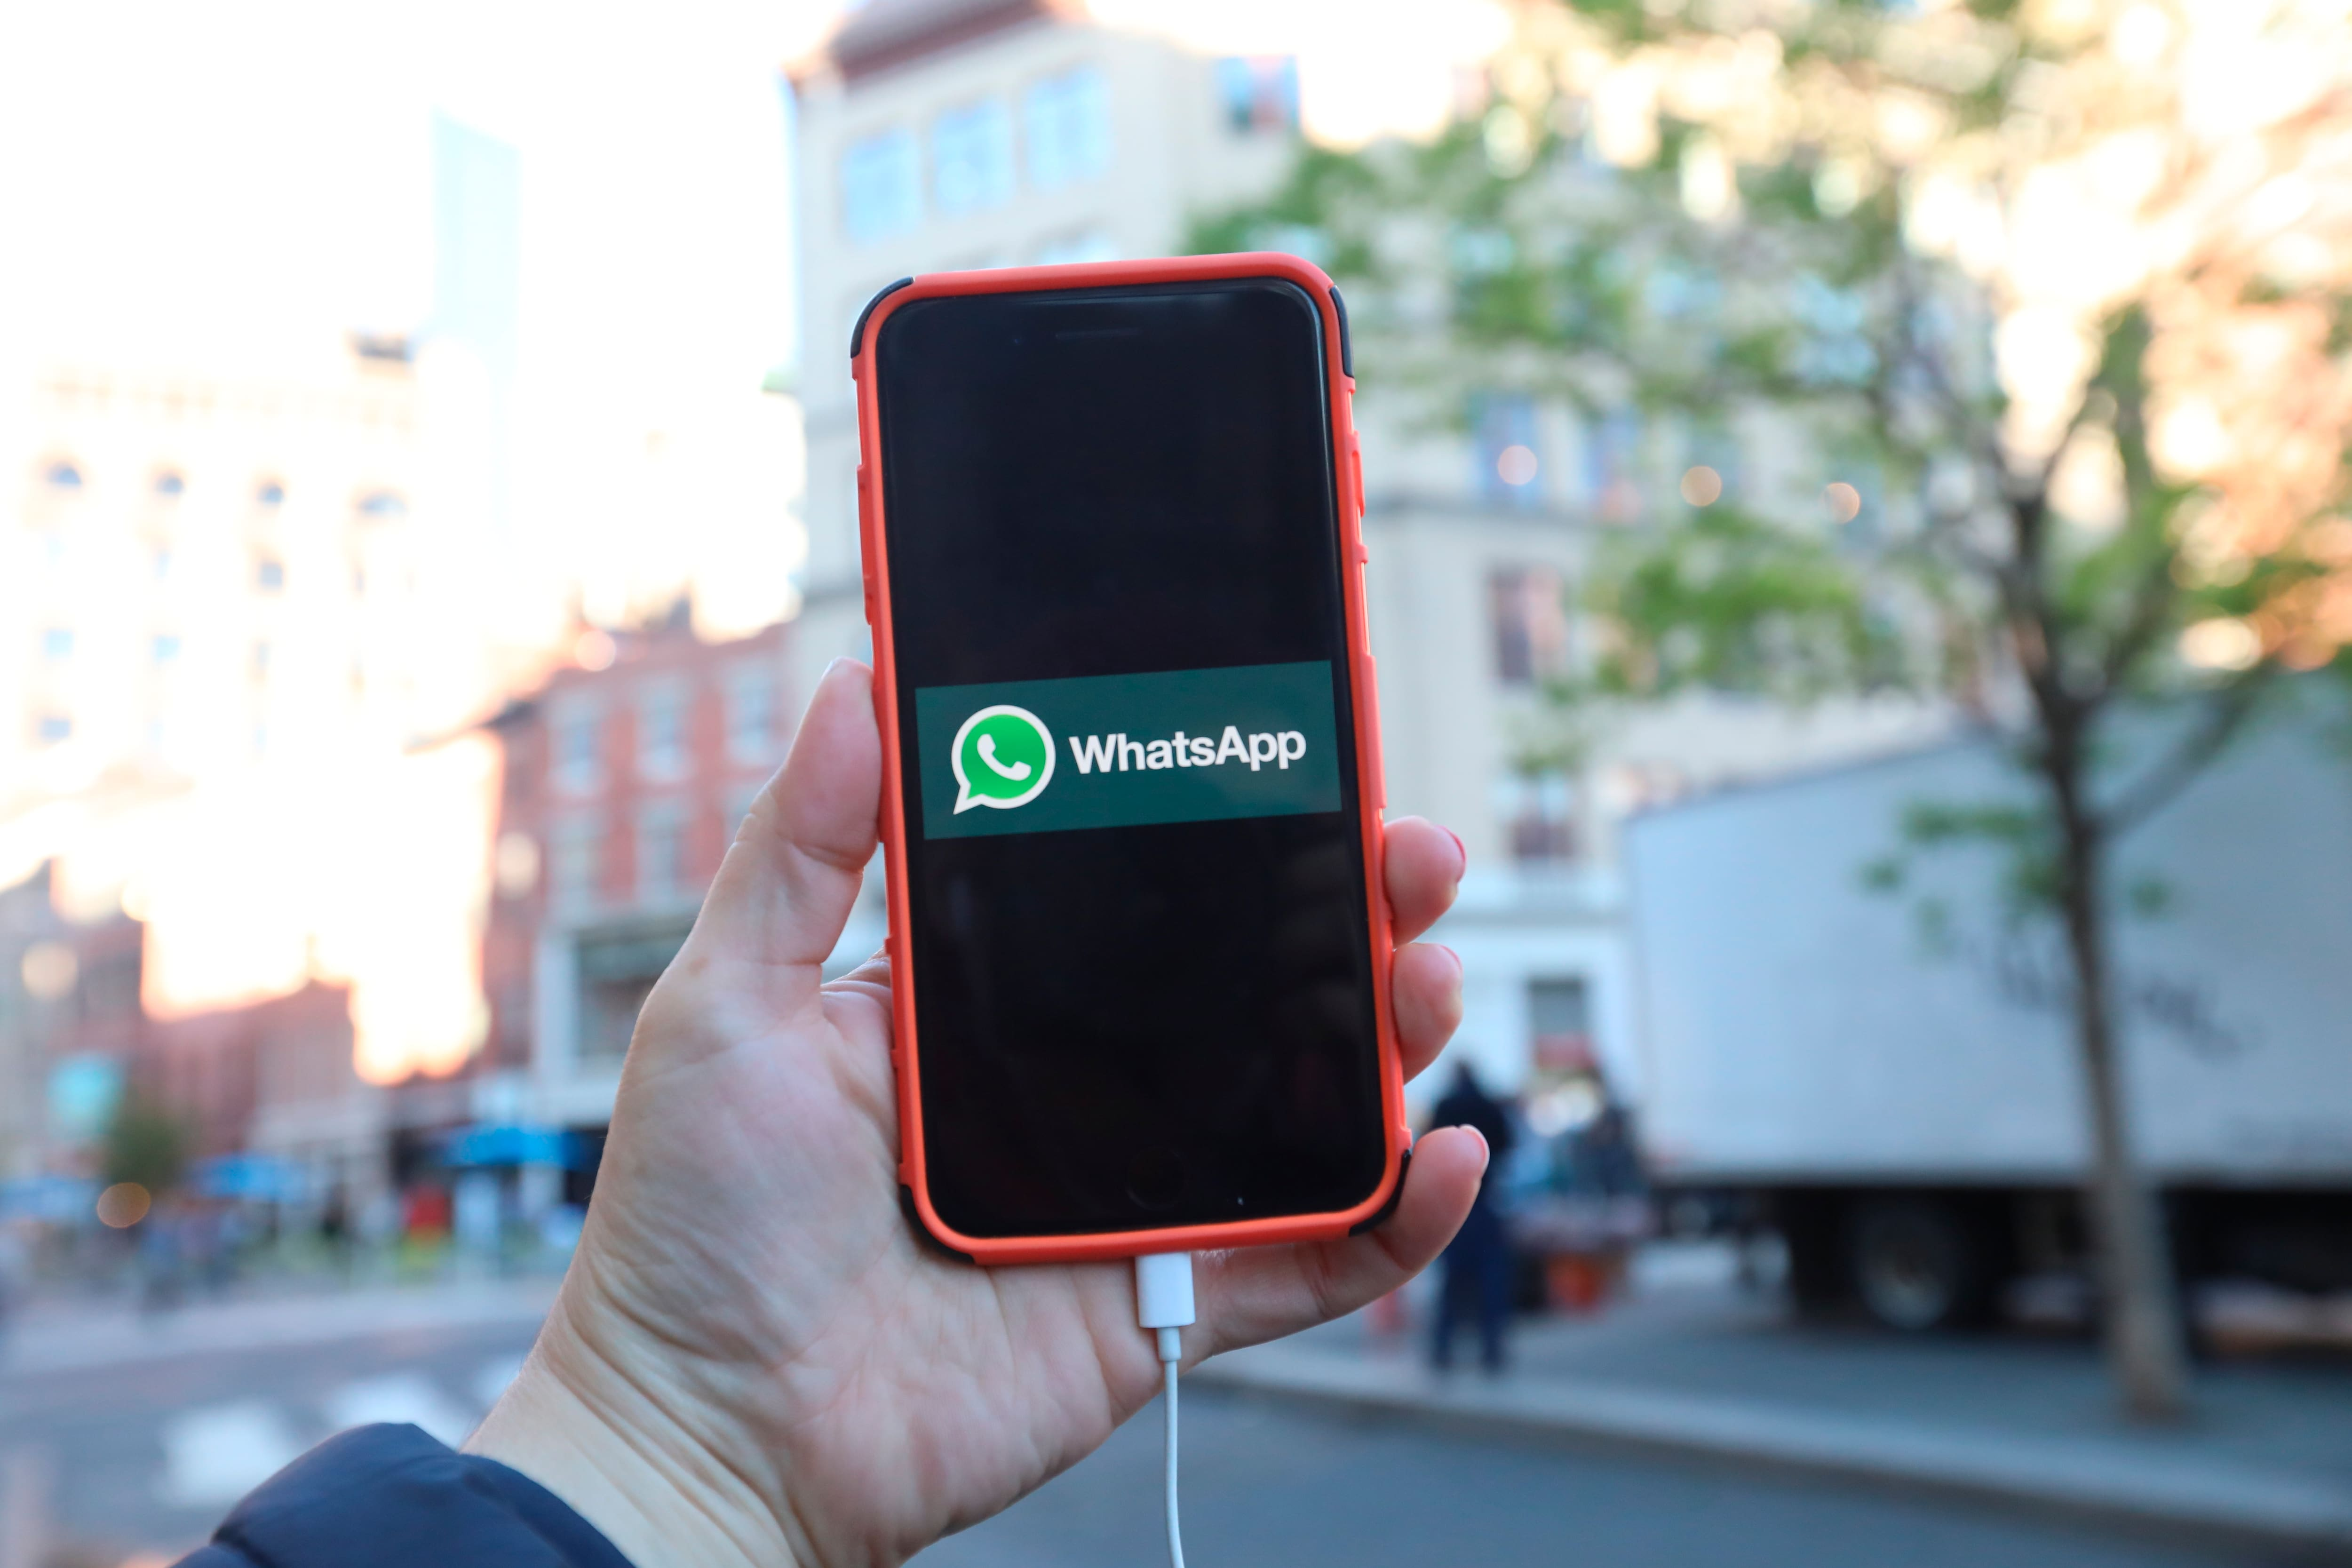 WhatsApp makes video calling in groups easier with this new update